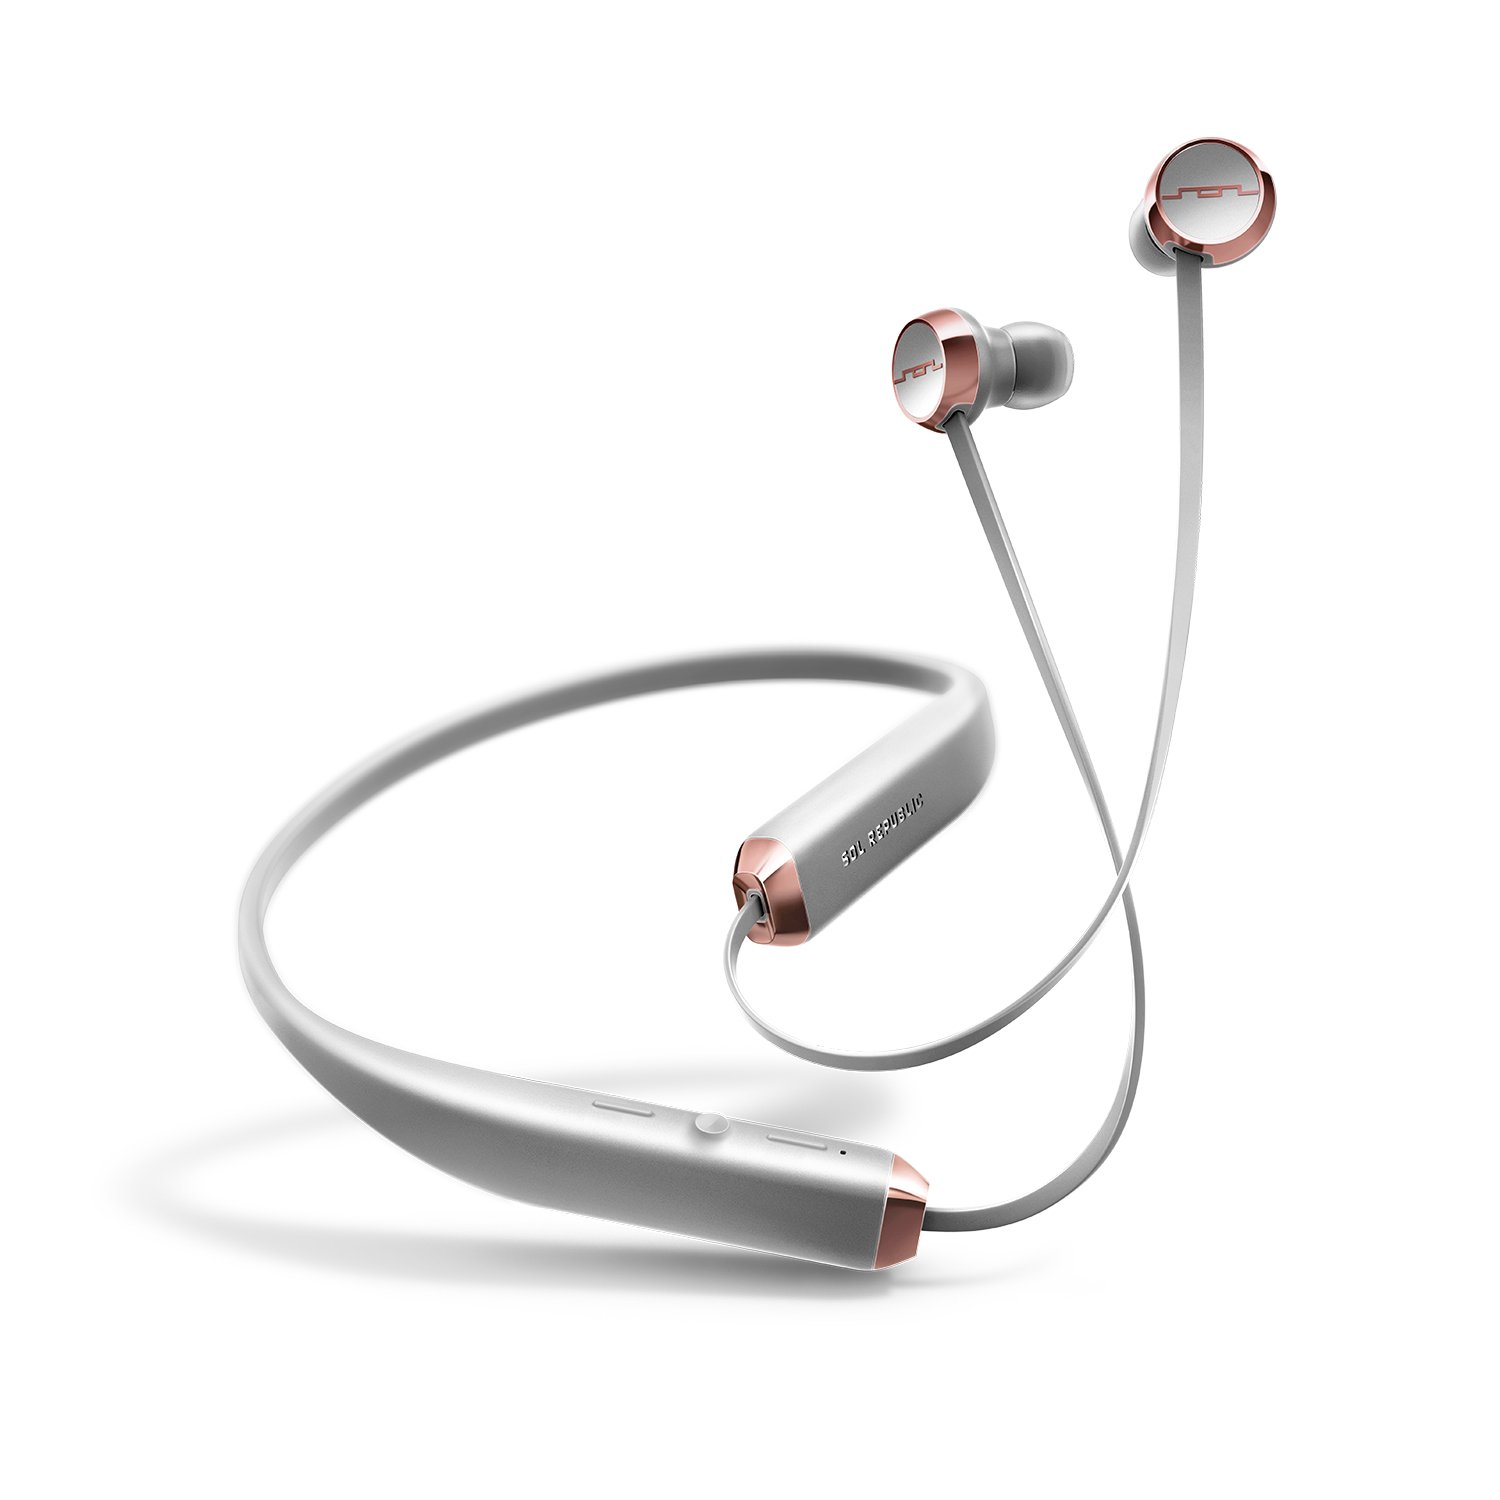 SOL REPUBLIC Shadow Wireless Bluetooth Earbuds – Multi-Device Connectivity, Folds in your Pocket, Noise Isolation, Featherweight Comfort, Rechargeable Battery, SOL-EP1140GY Grey by SOL REPUBLIC